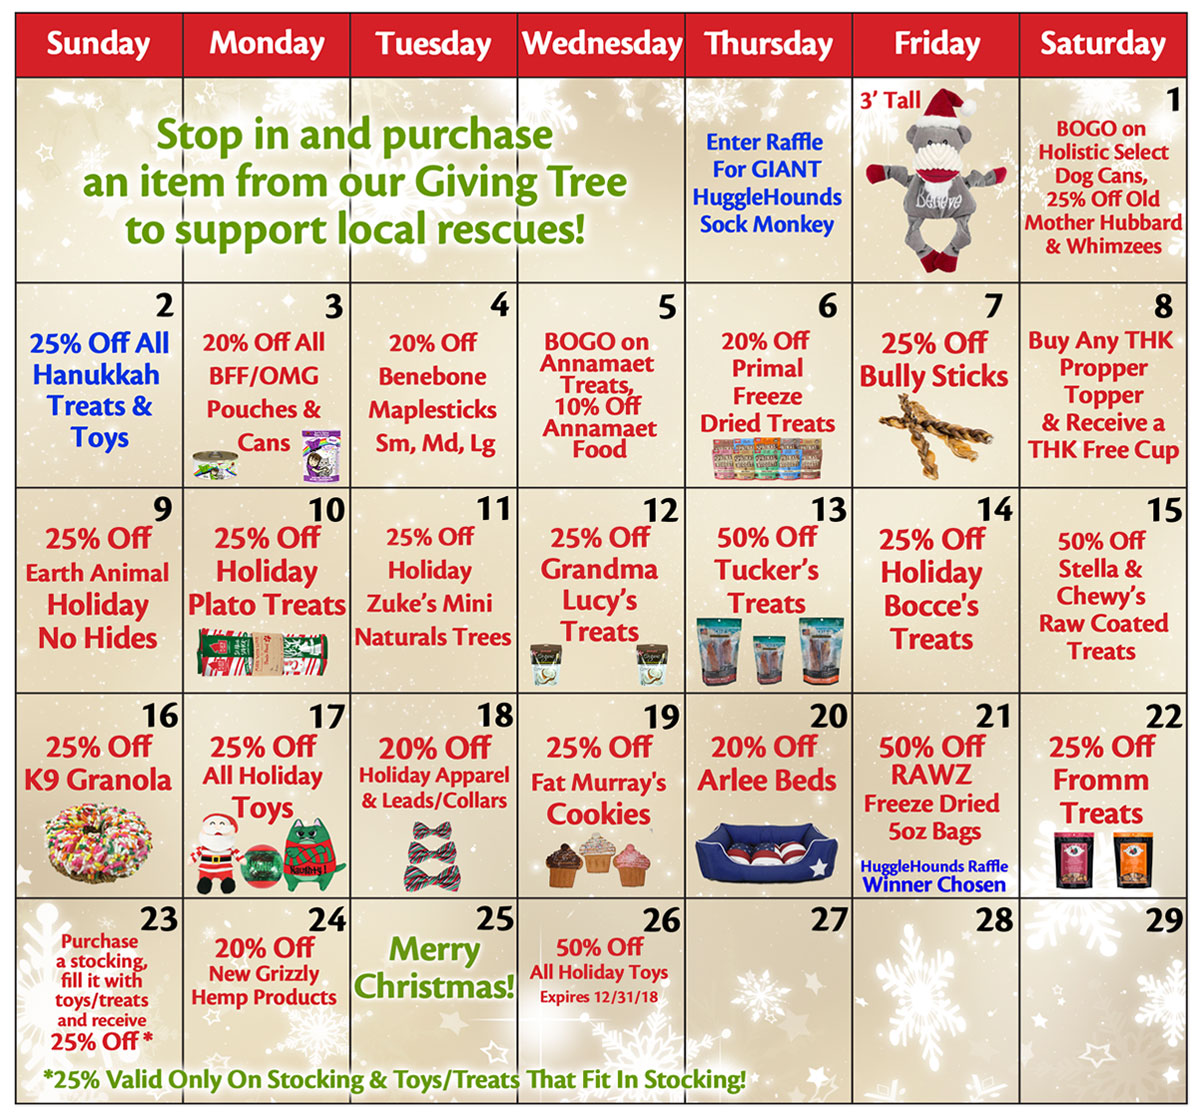 25 Days of Holiday Savings Calendar